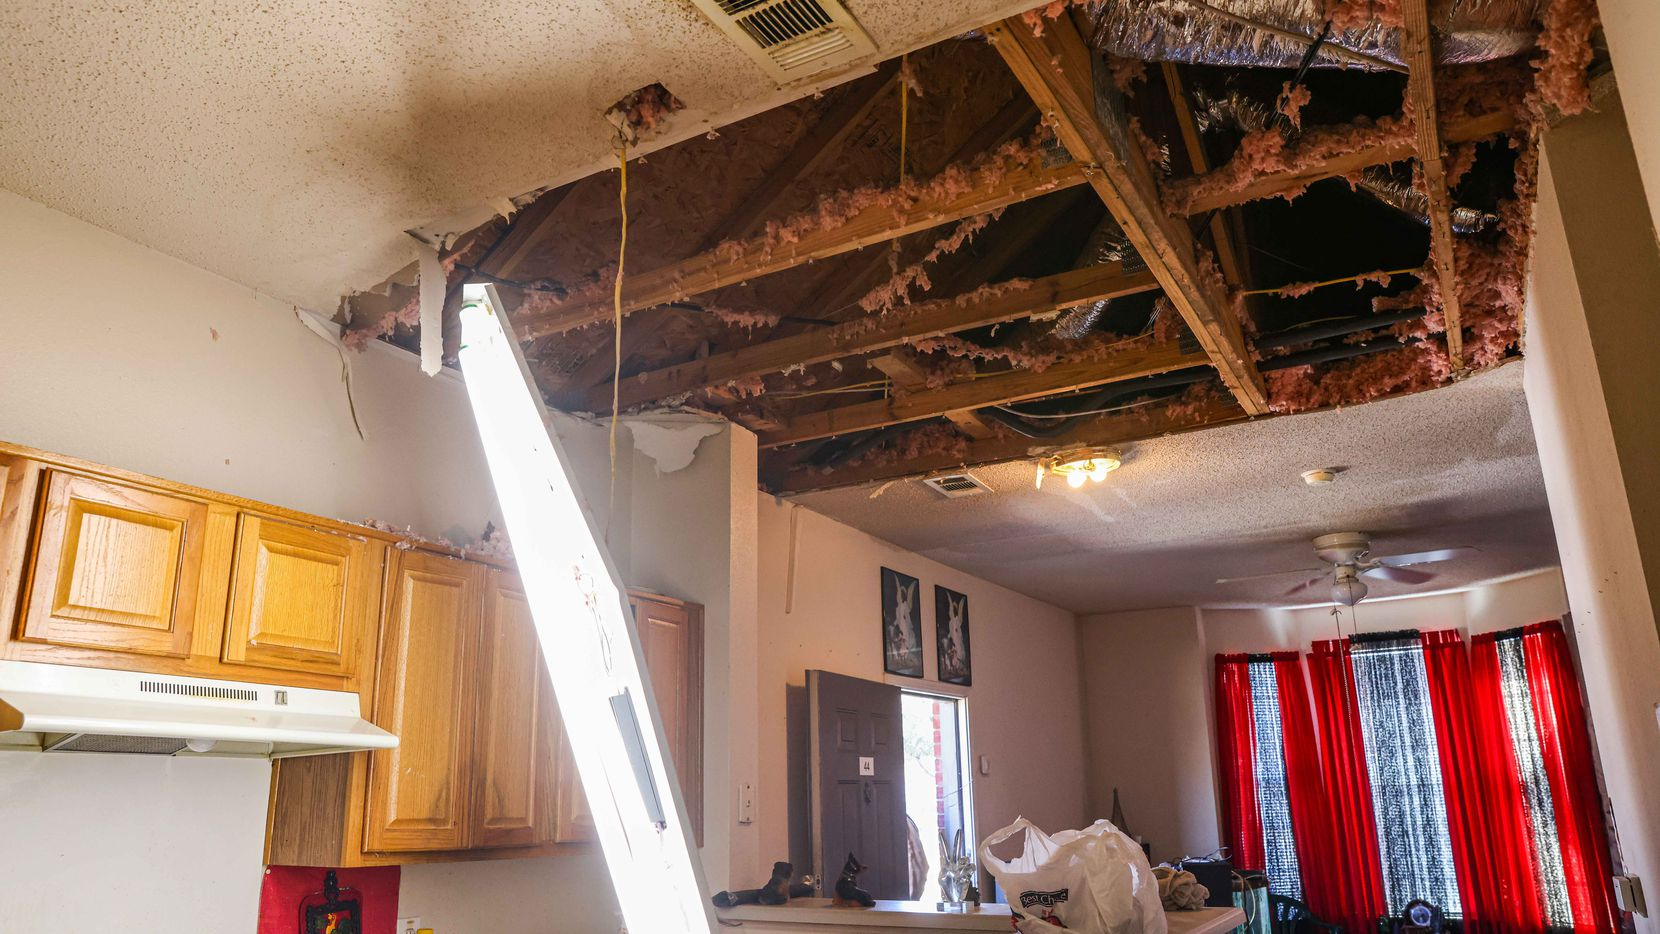 Lee Henderson's apartment at Westmoreland Heights in Dallas, where the kitchen ceiling collapsed due to water damage after the snow storm Uri hit Dallas this week. Irving is asking residents and business owners to report damage in an online survey.